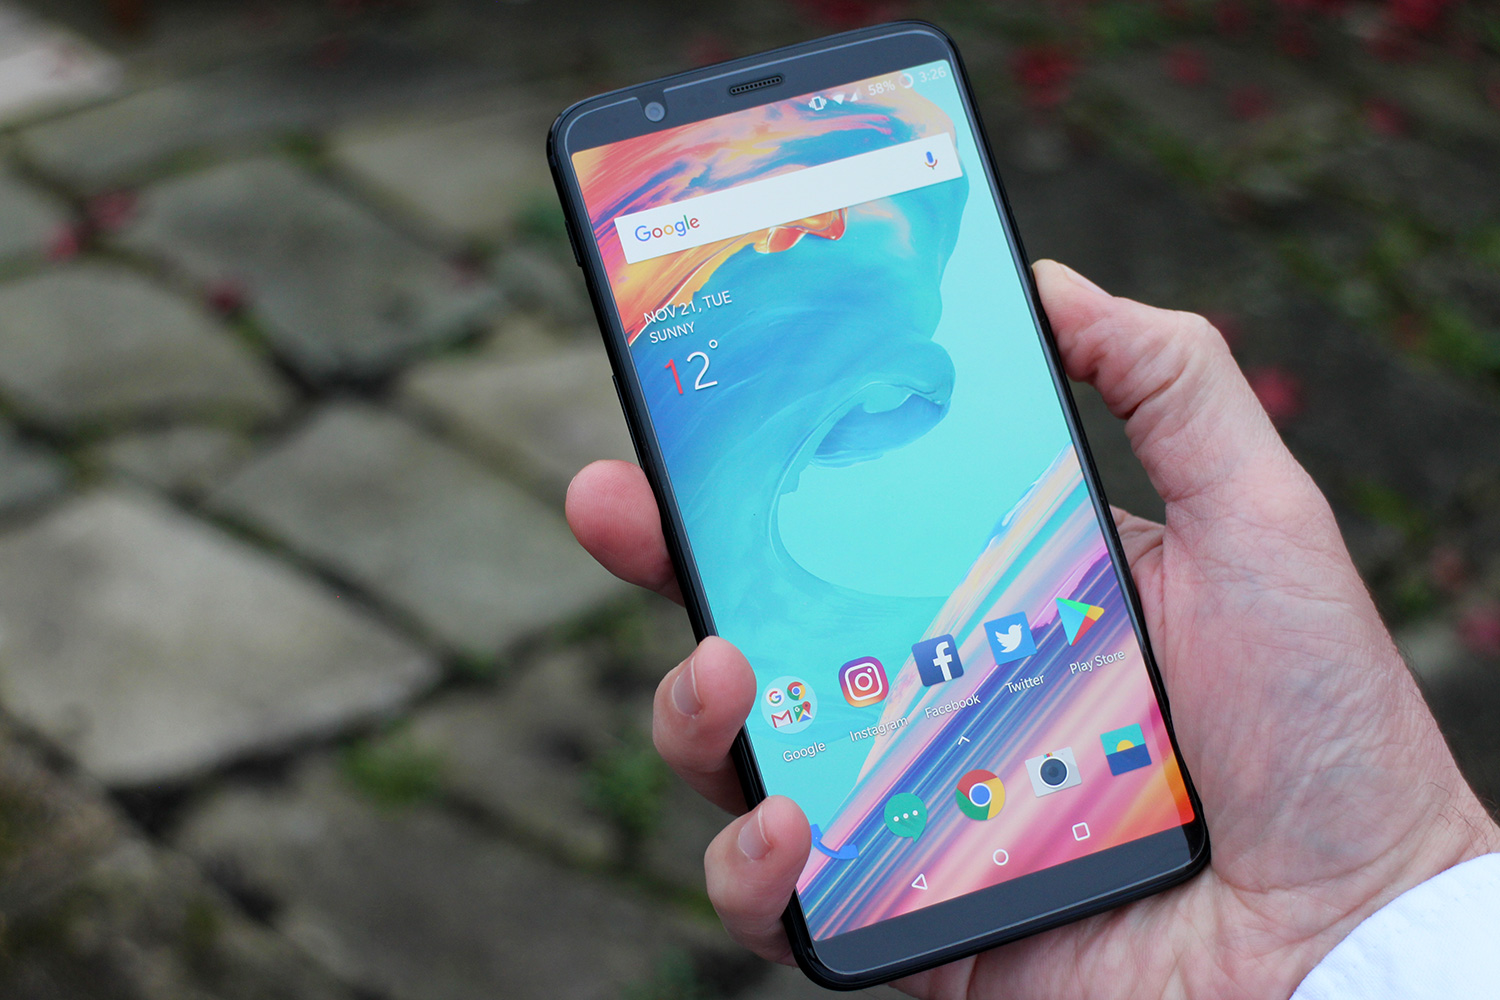 OnePlus CEO confirms June launch for OnePlus 6